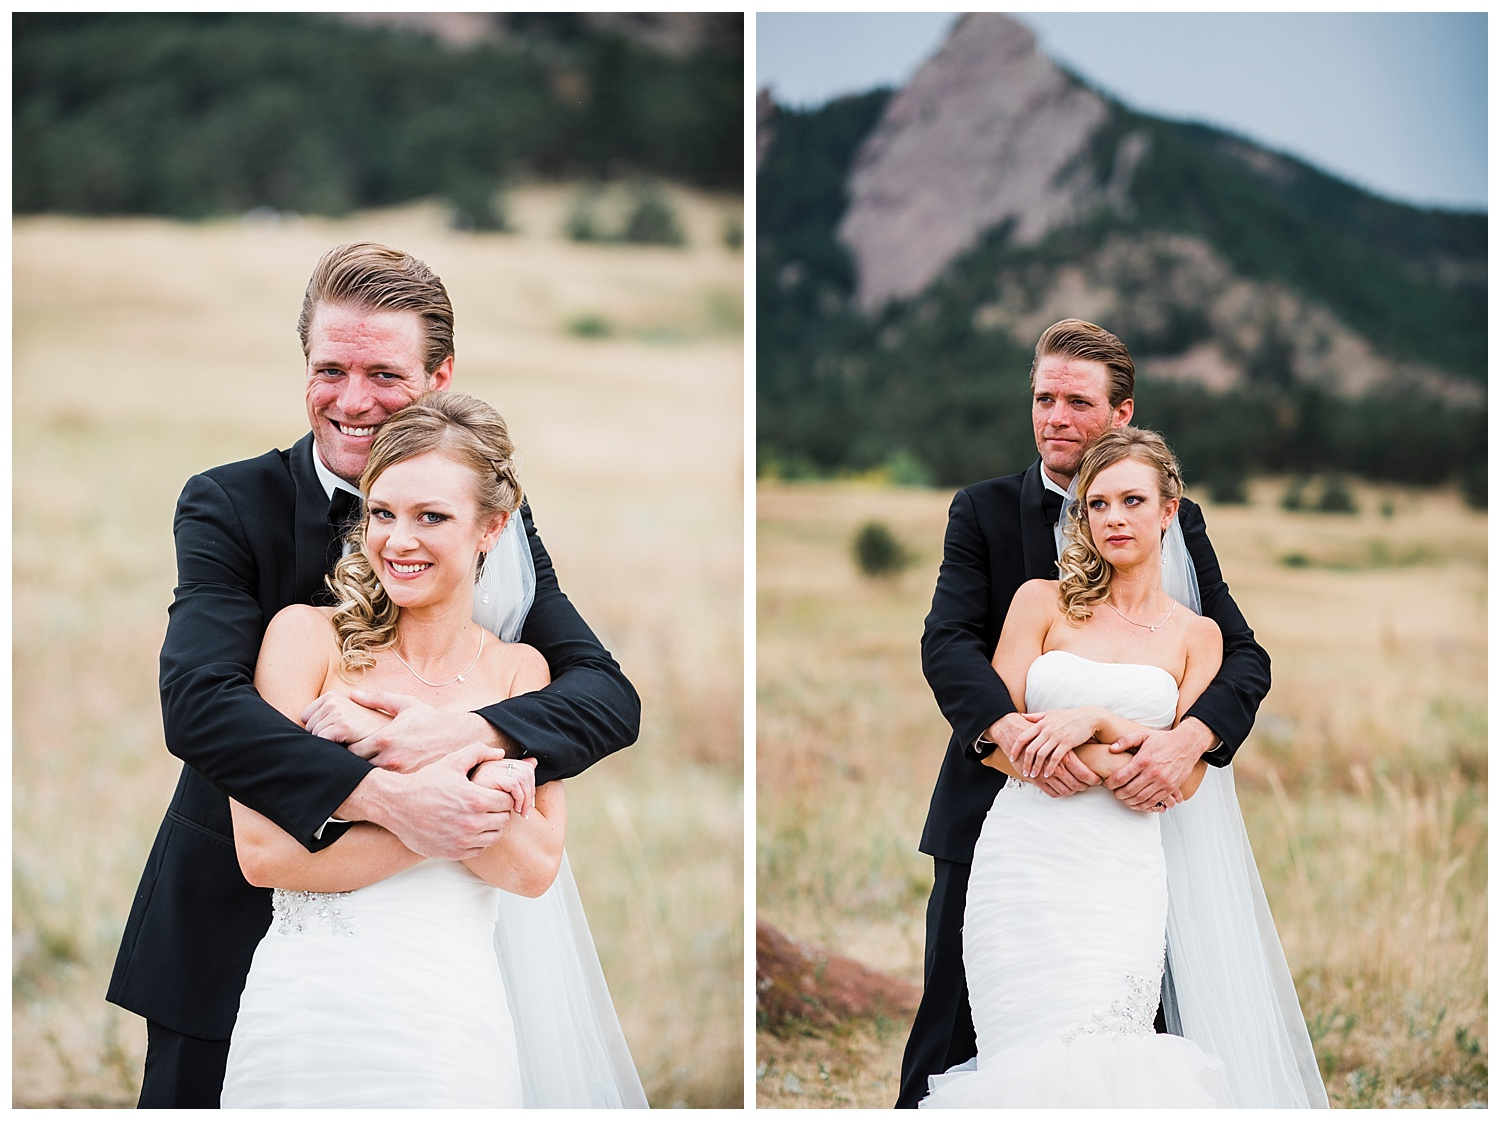 Wedgewood_Boulder_Creek_Wedding_Venue_Colorado_Photographer_Apollo_Fields_011.jpg